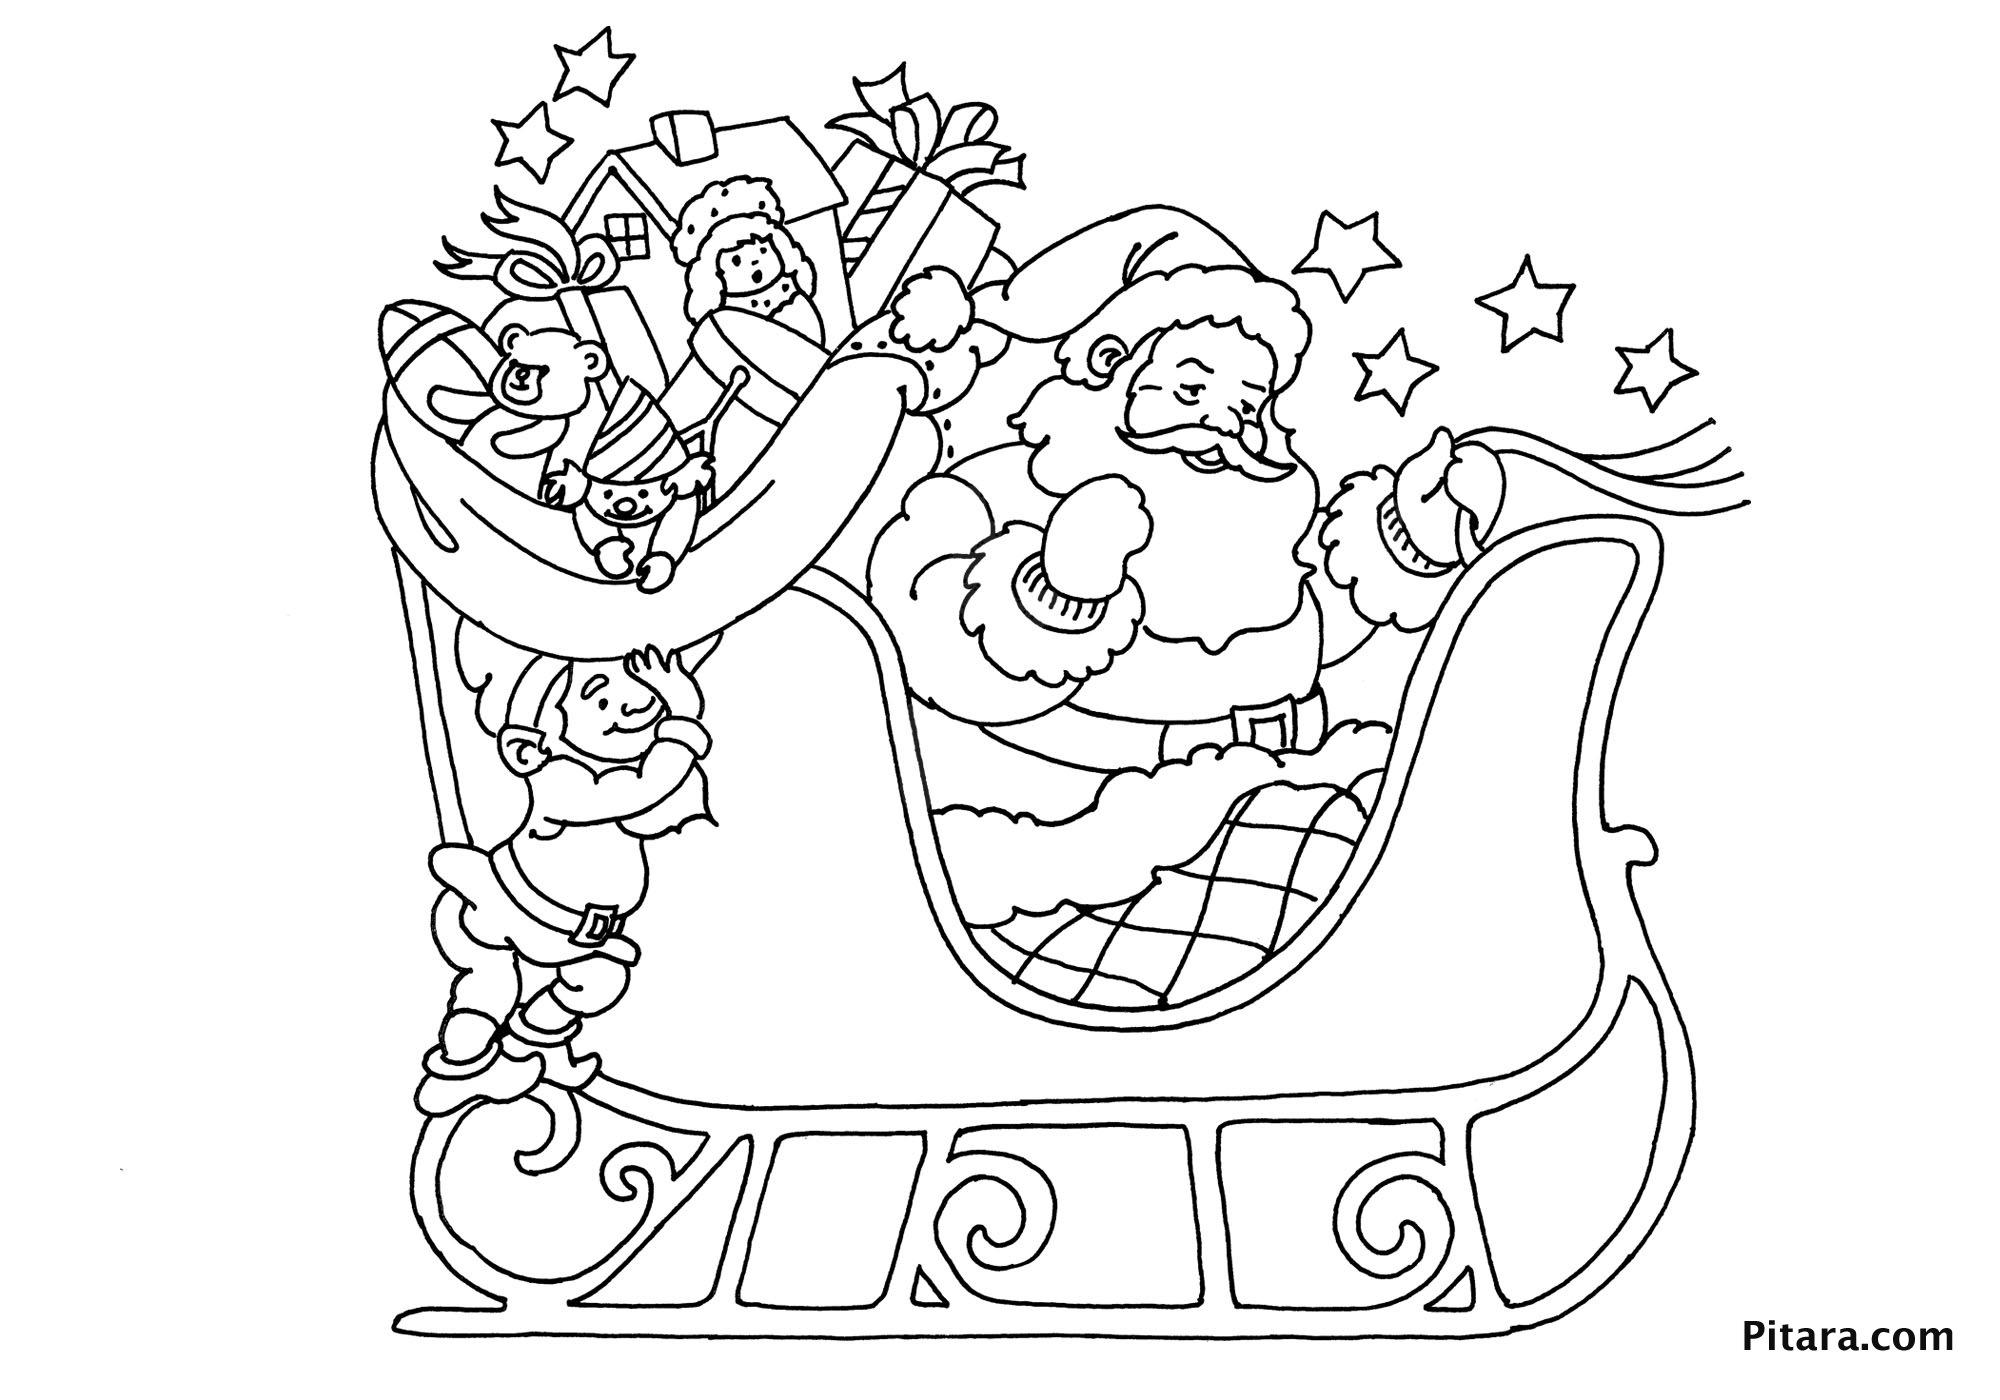 Santa Claus In Sleigh Coloring Page Christmas Coloring Pages For Kids Pitara Kids Network